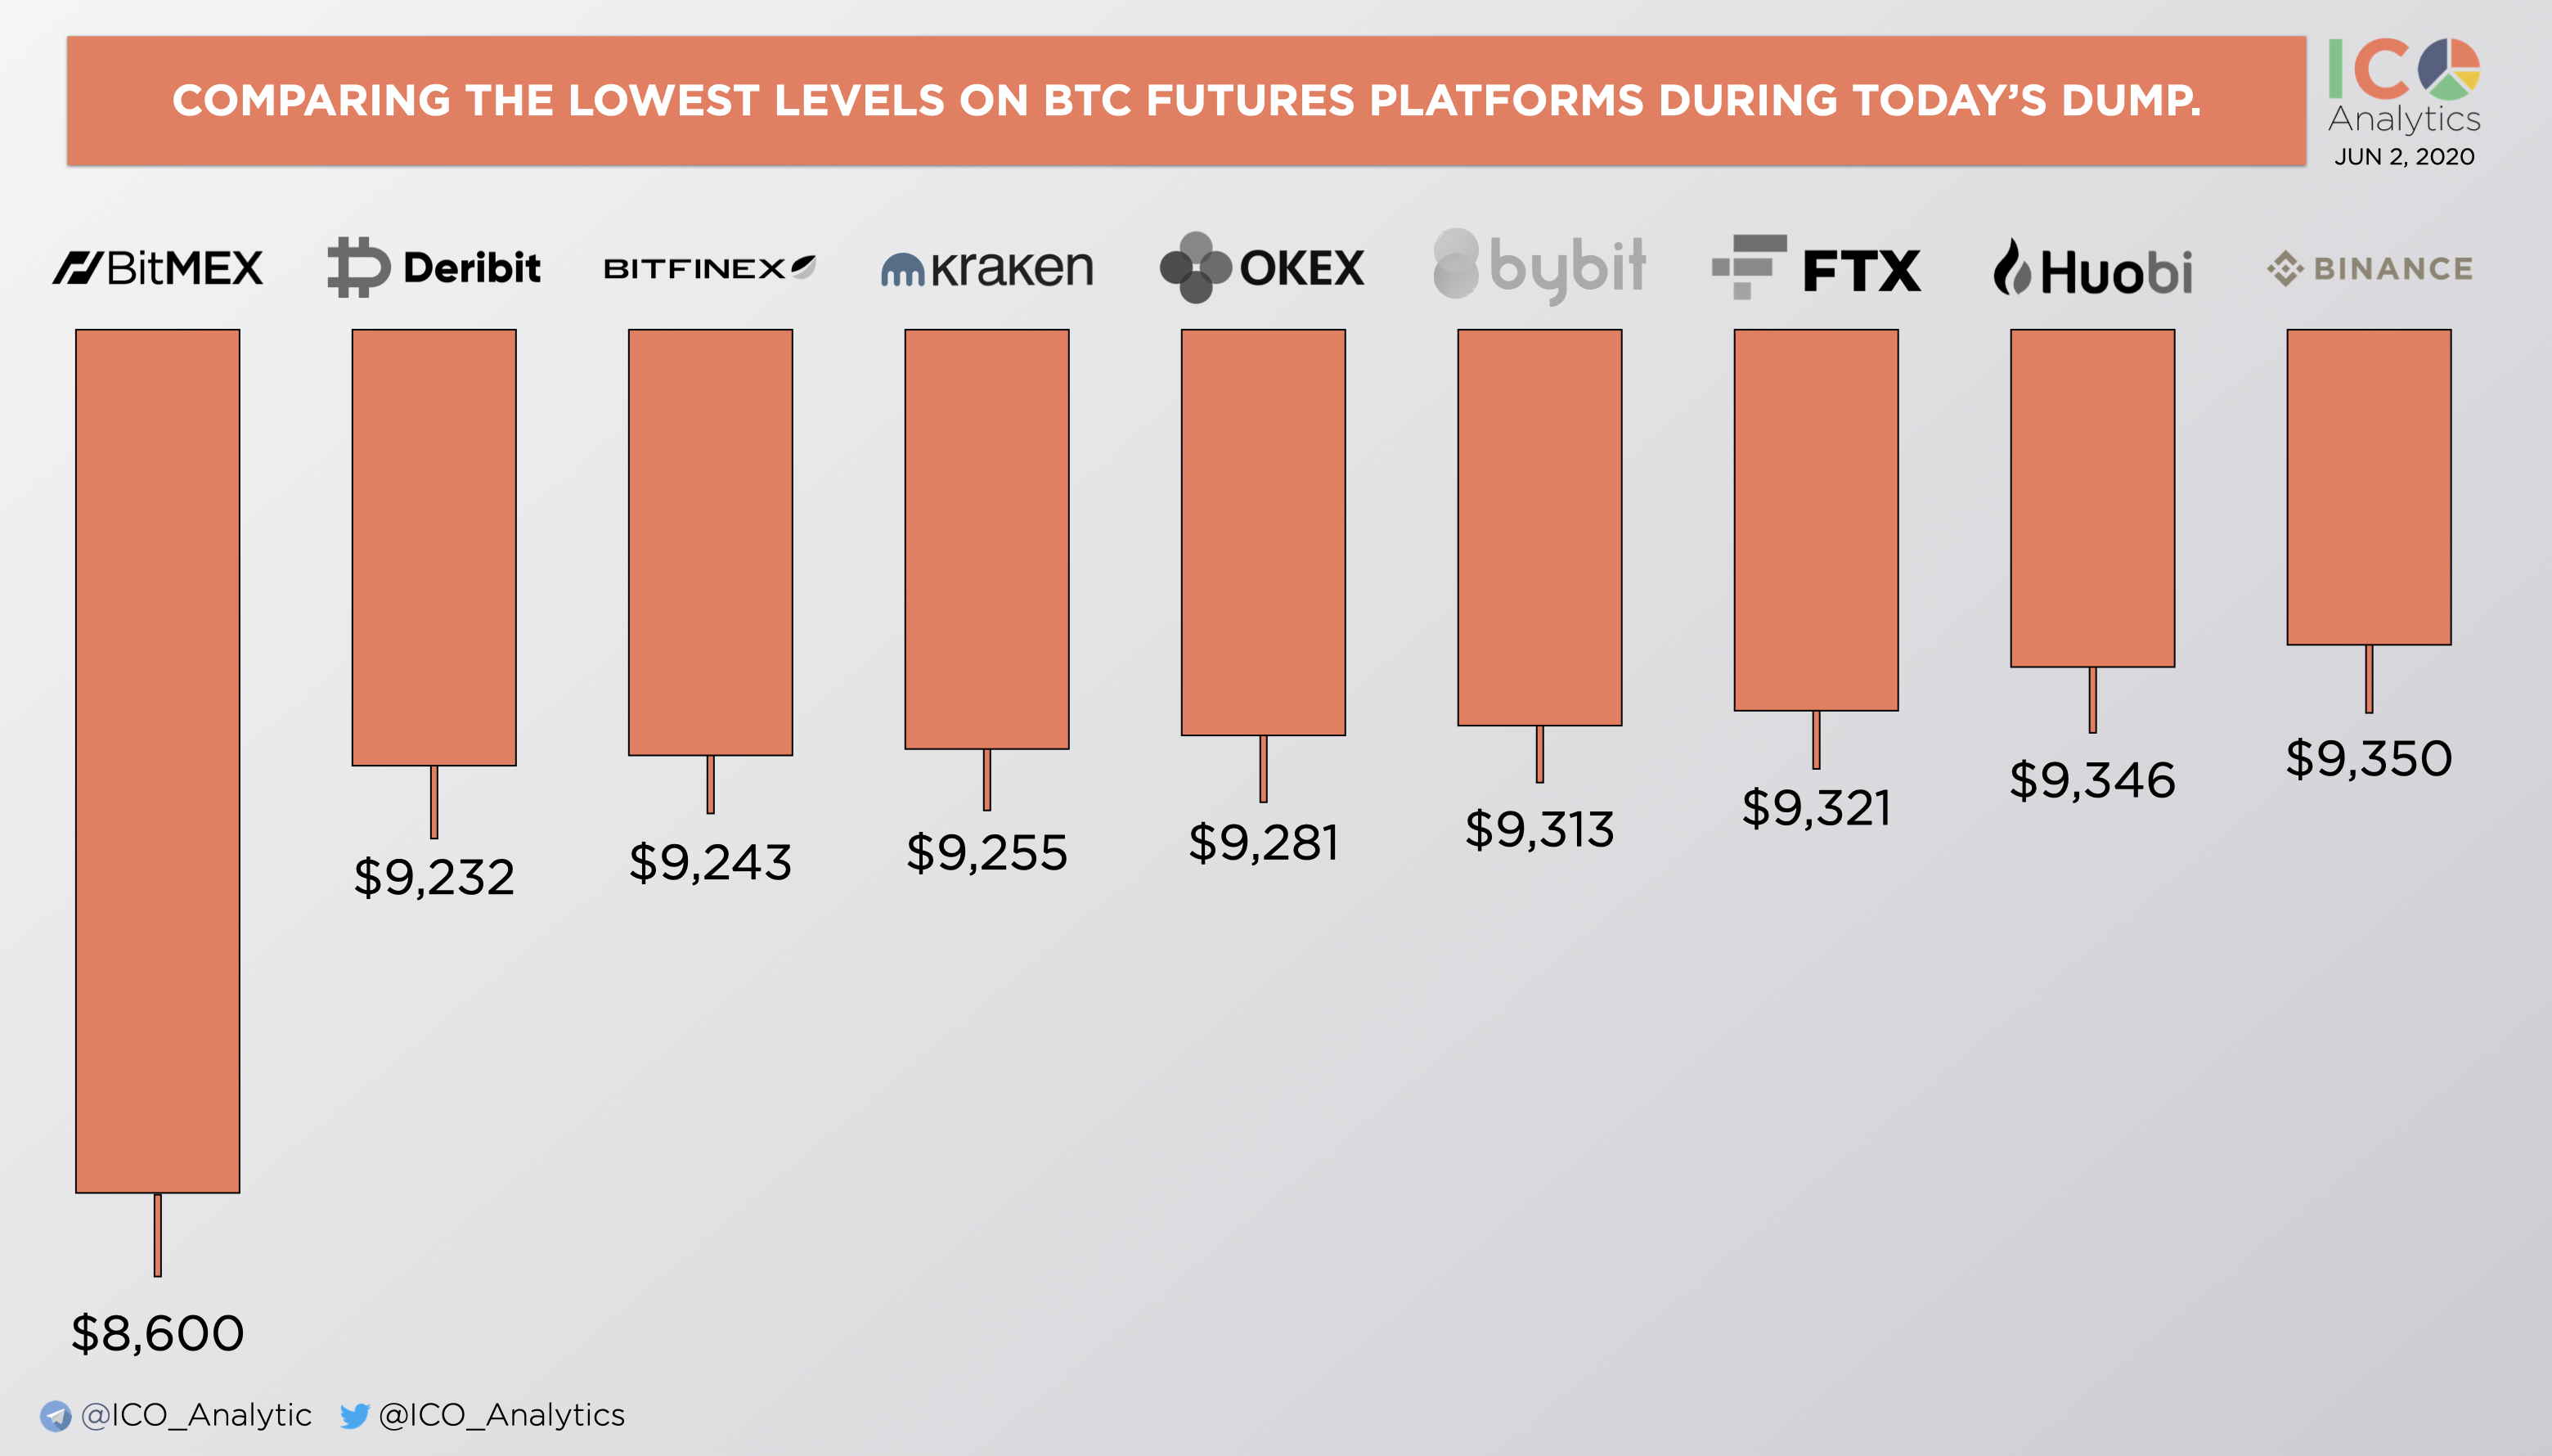 BitMEX Gets Obliterated by Bitcoin's Volatility. (Source: ICO Analytics)